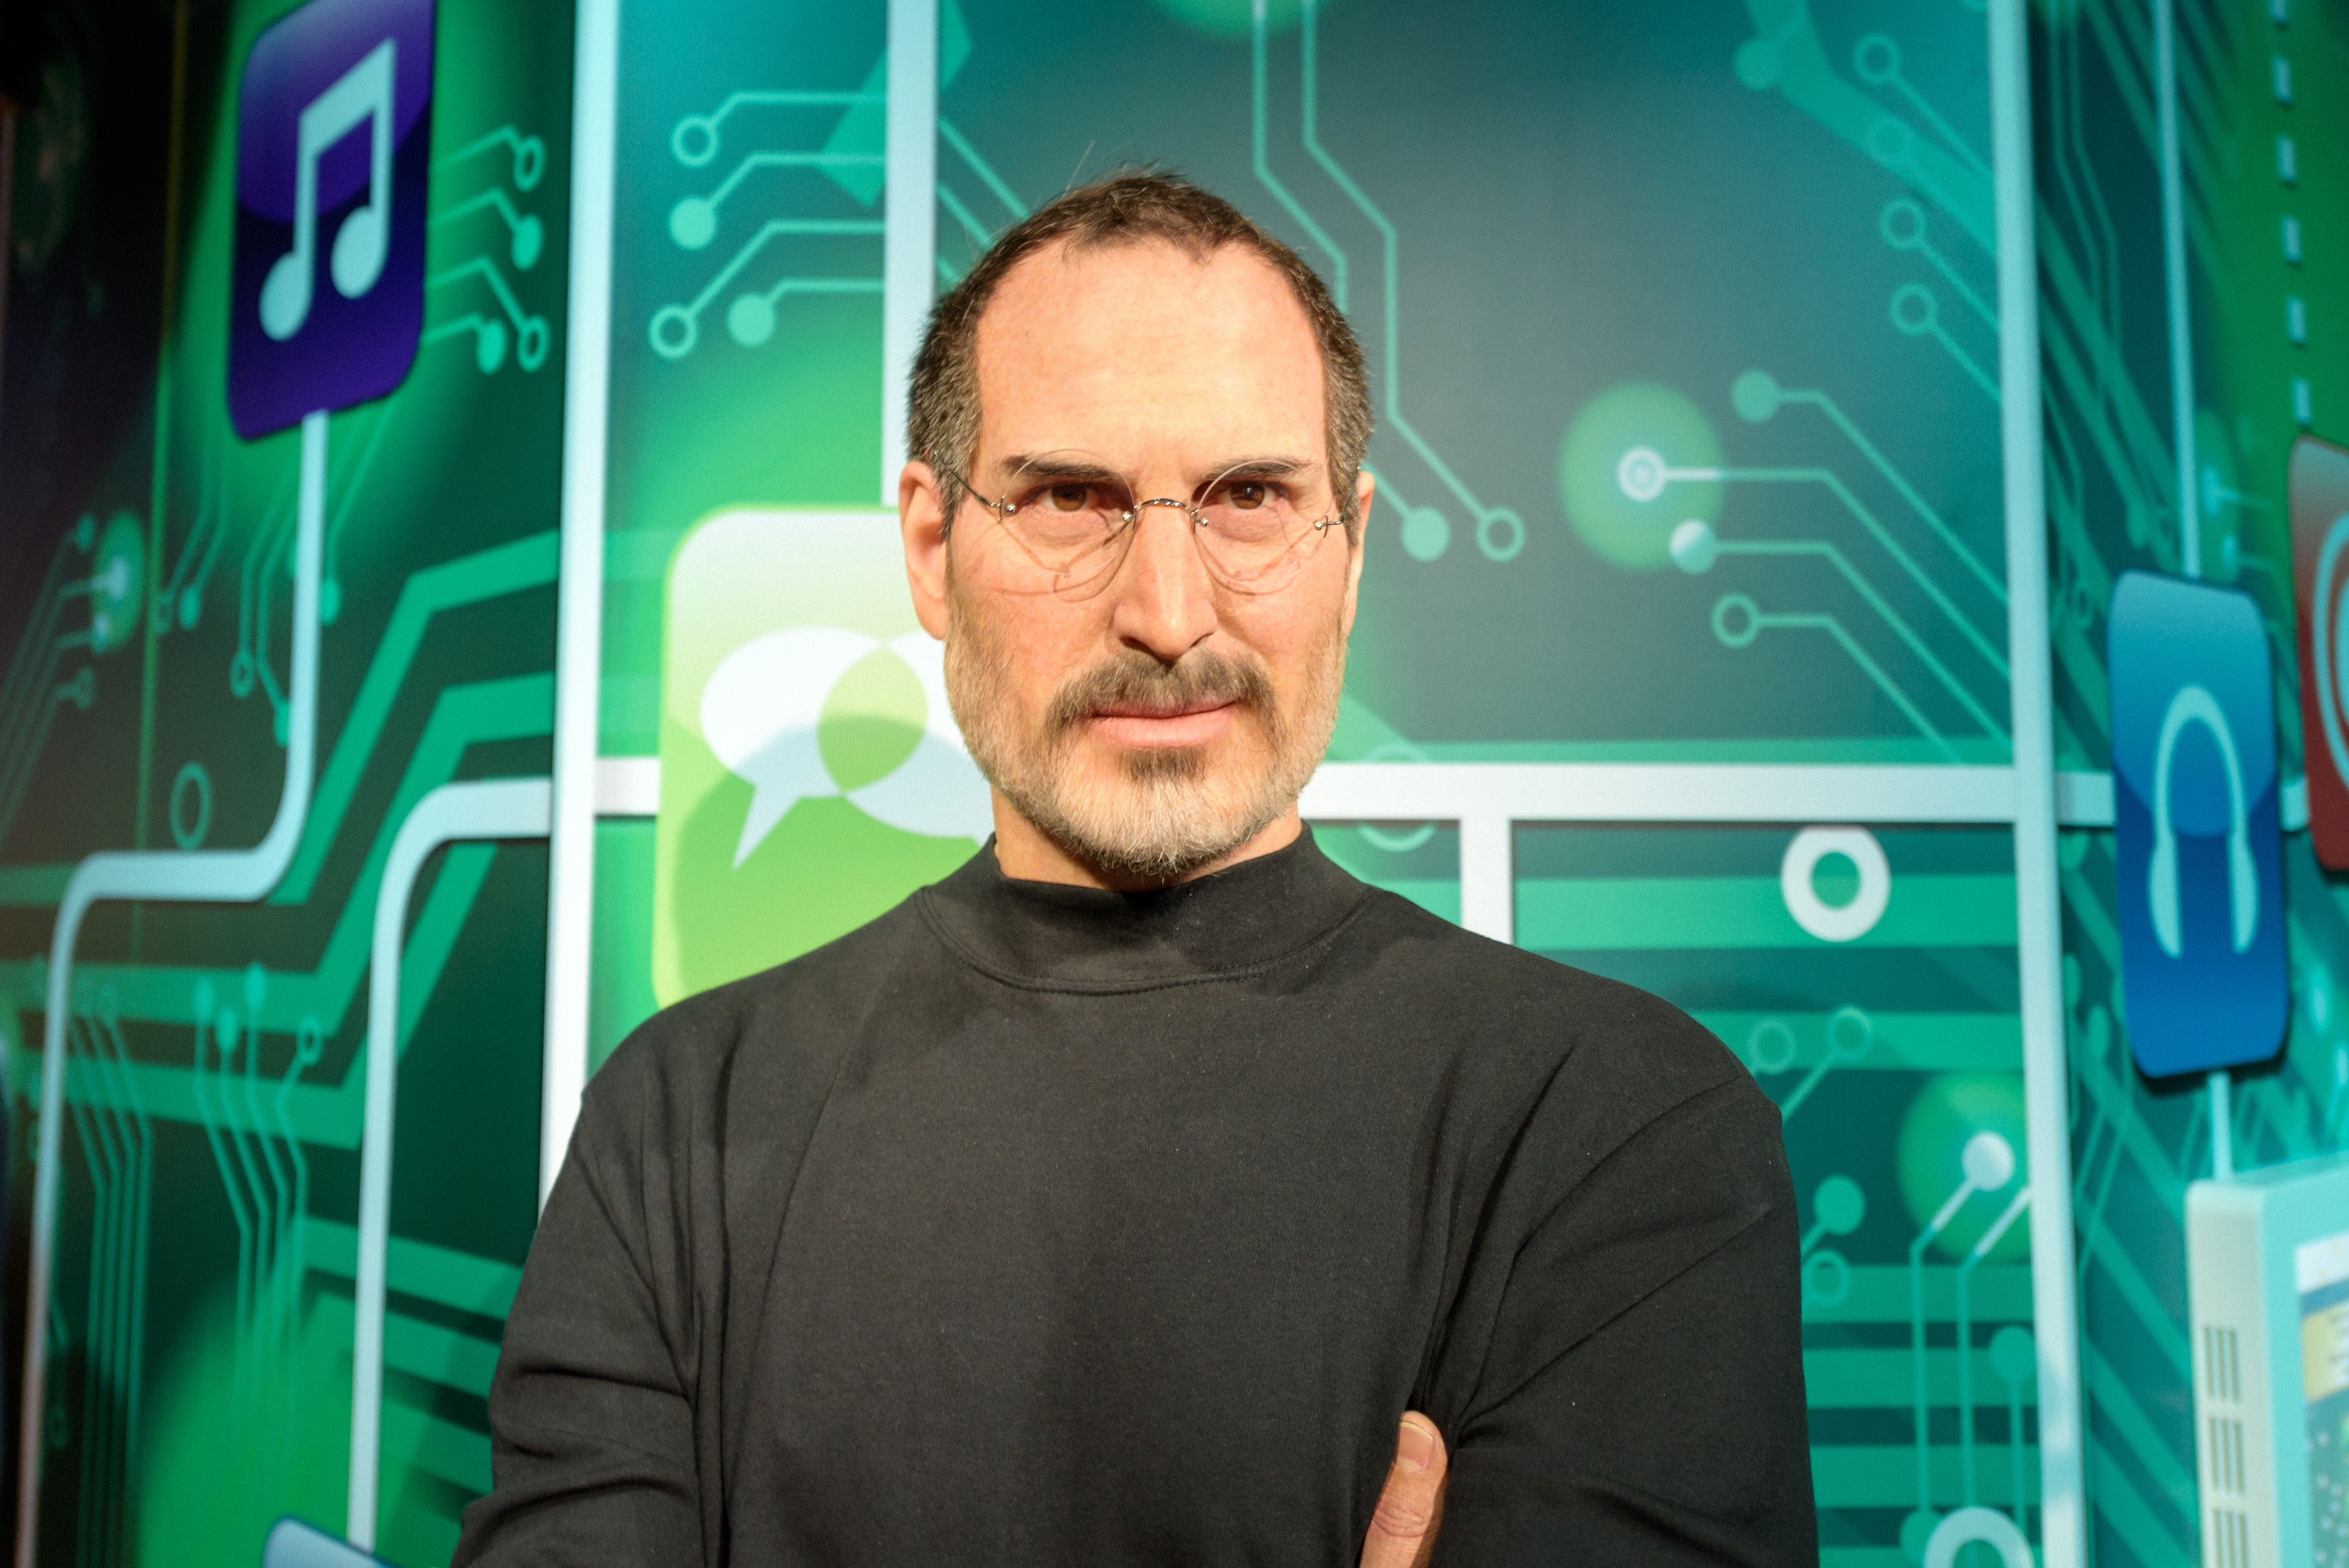 steve jobs at madame tussauds wax museum in istanbul